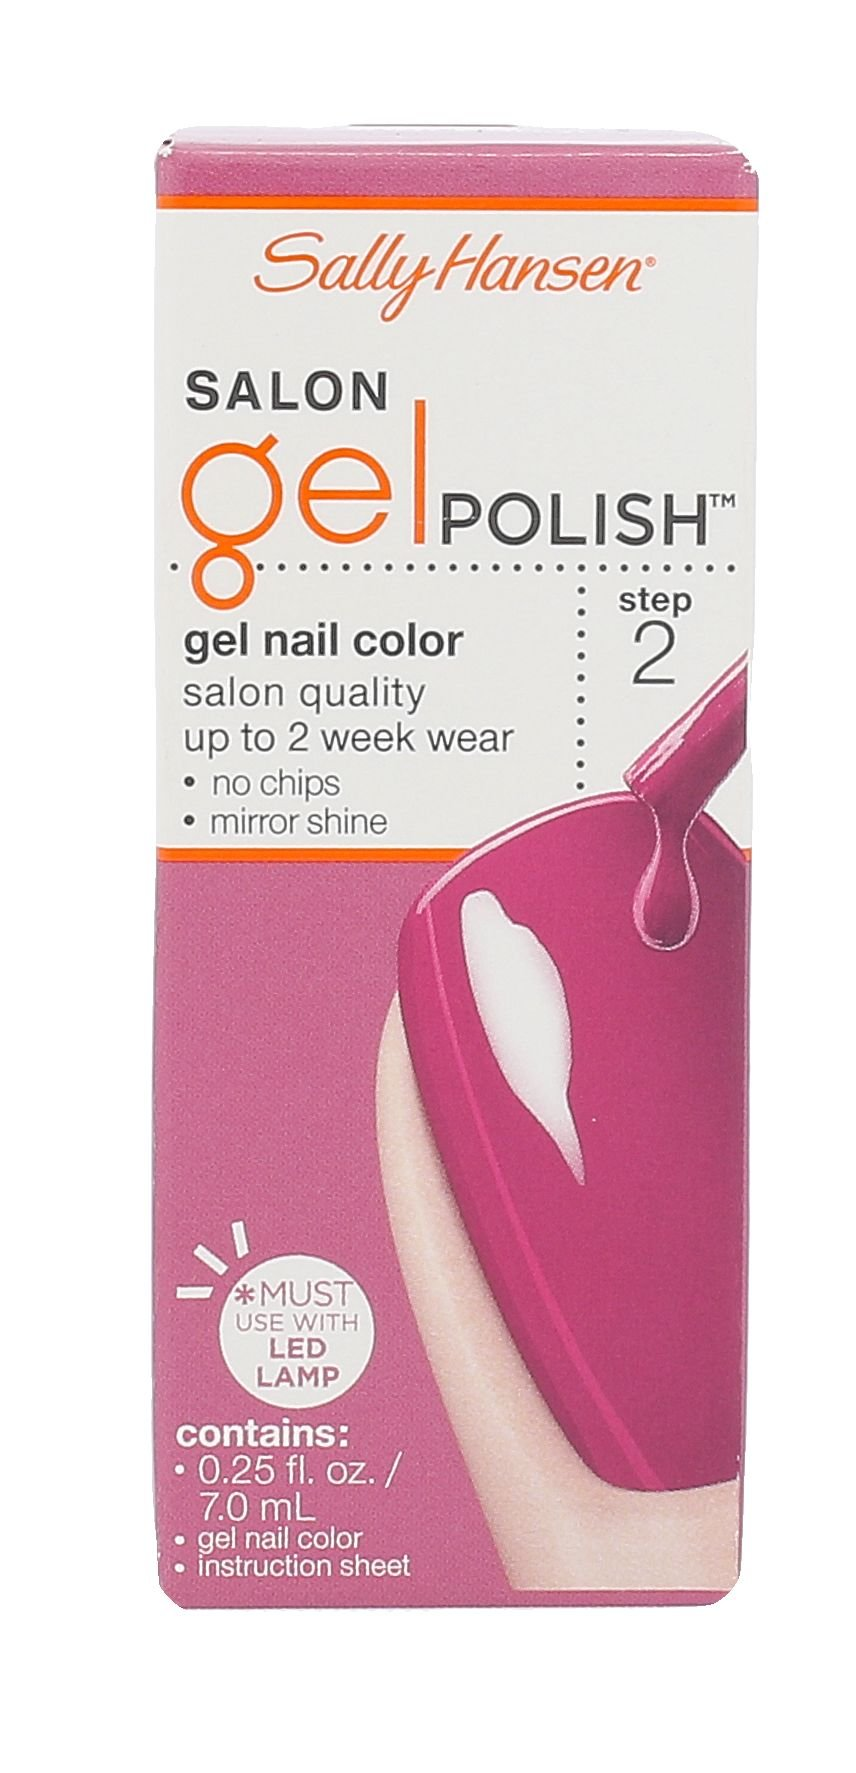 Sally Hansen Salon Gel Polish Cosmetic 7ml 245 Cherry, Cherry Bang, Bang! Step 2